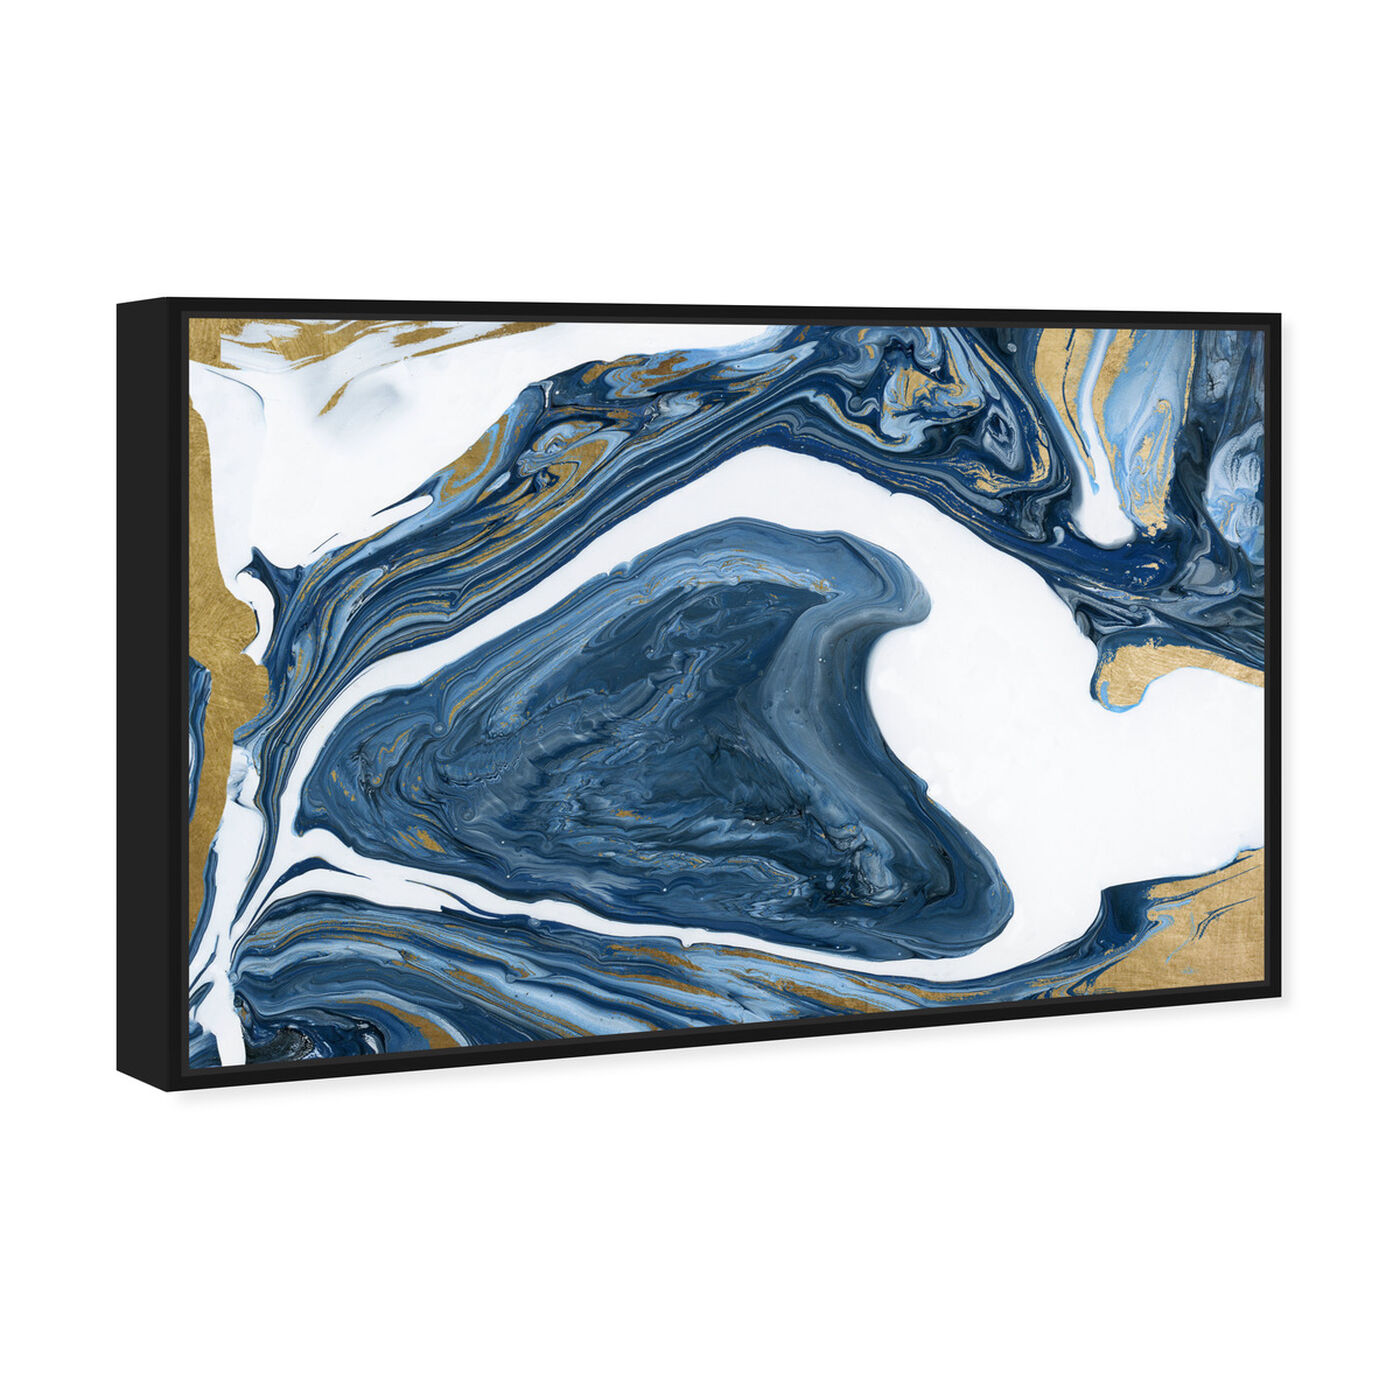 Angled view of Deep Agate featuring abstract and crystals art.